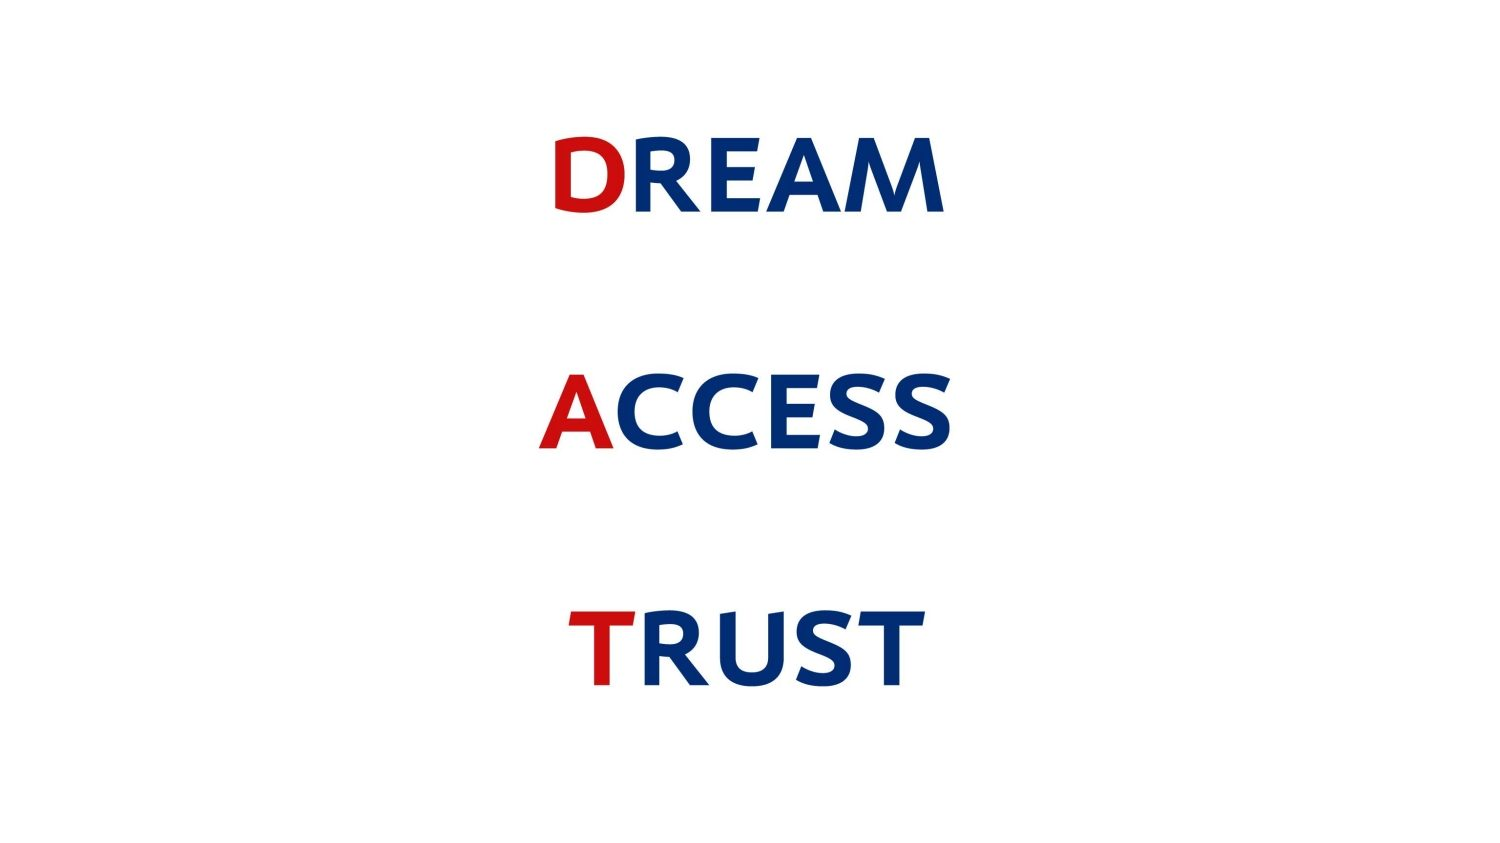 dream_access_trust